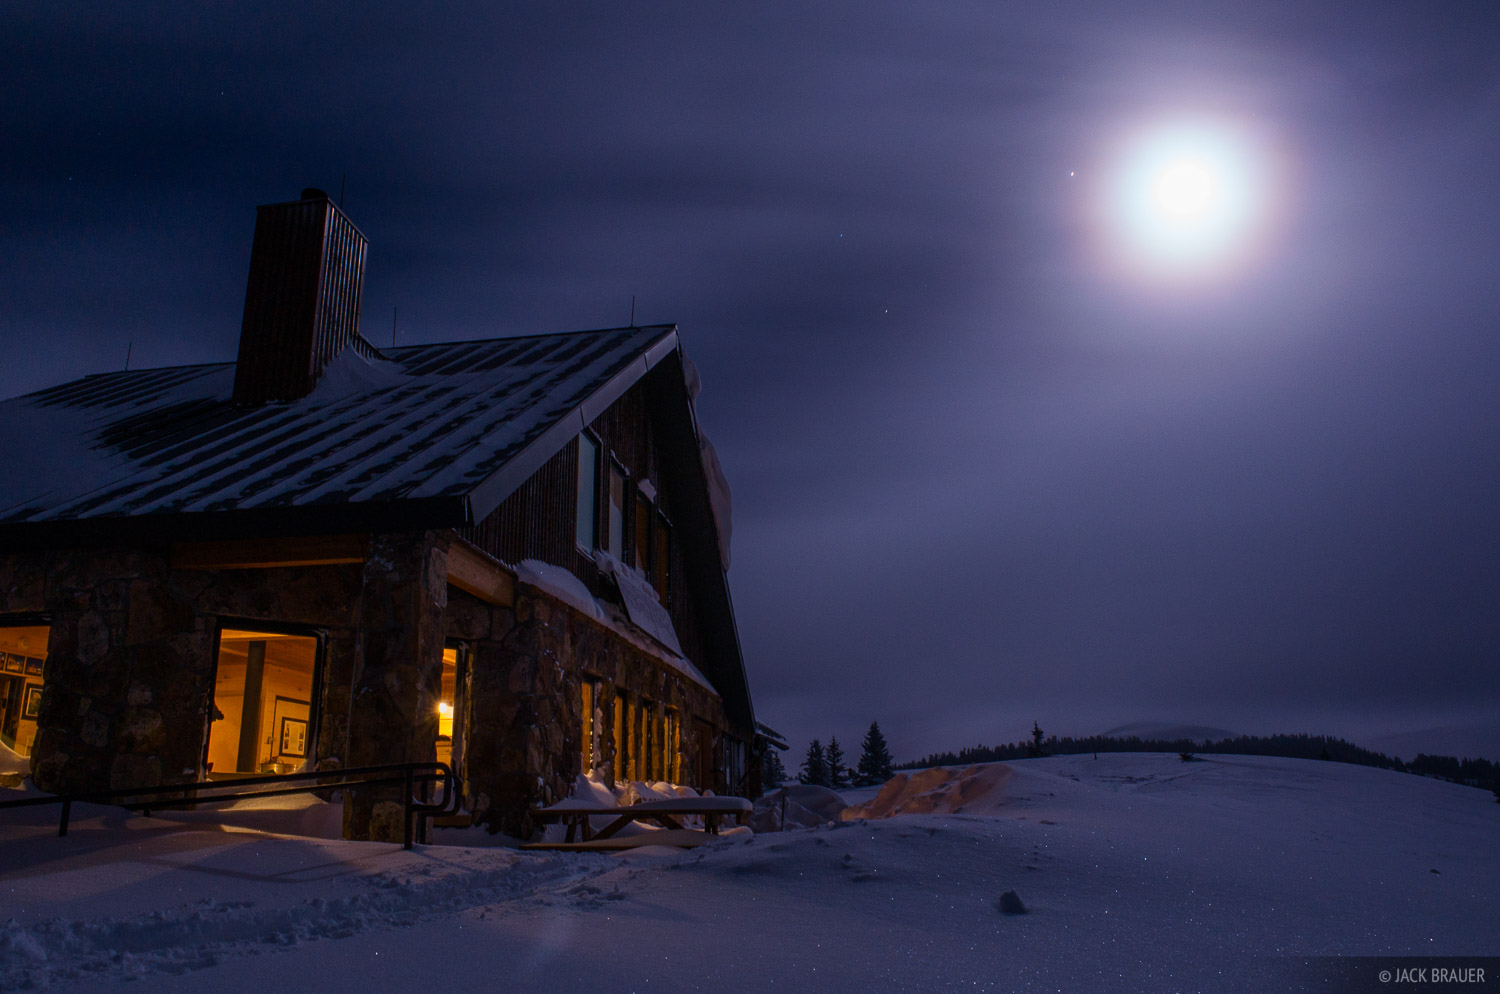 A full moon shines through breaking snowstorm clouds at the Fowler/Hilliard 10th Mountain Division hut - January.